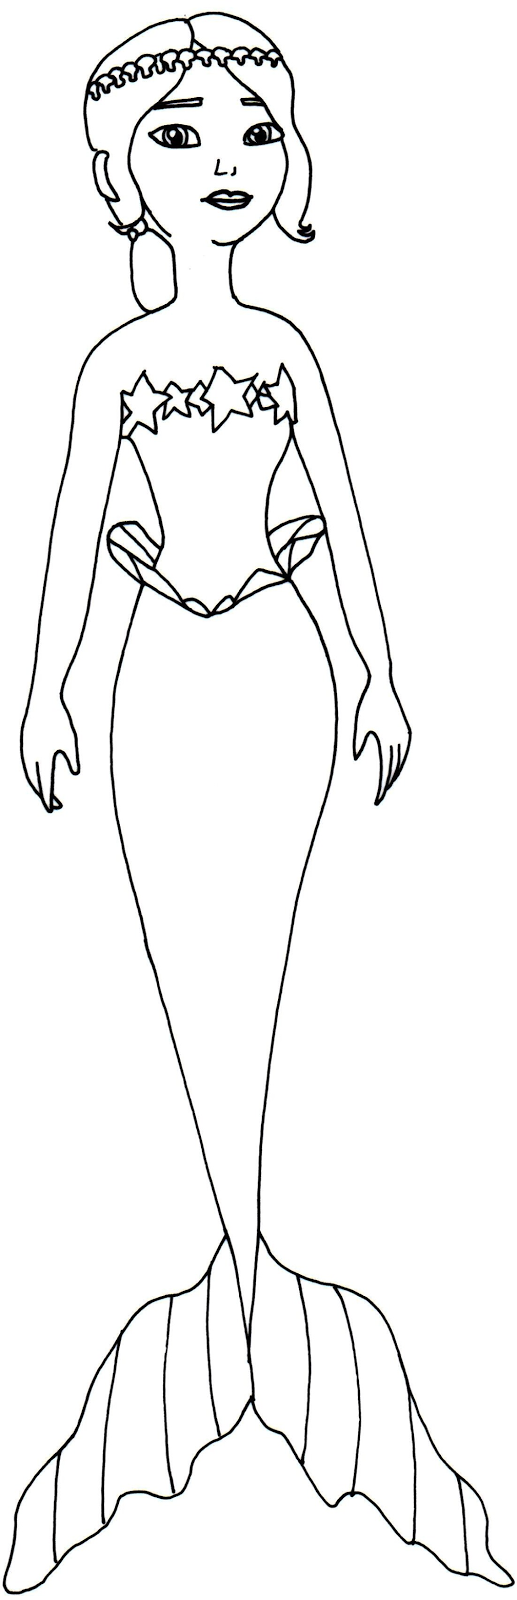 Sofia Coloring Pages Pdf : Sofia coloring page home